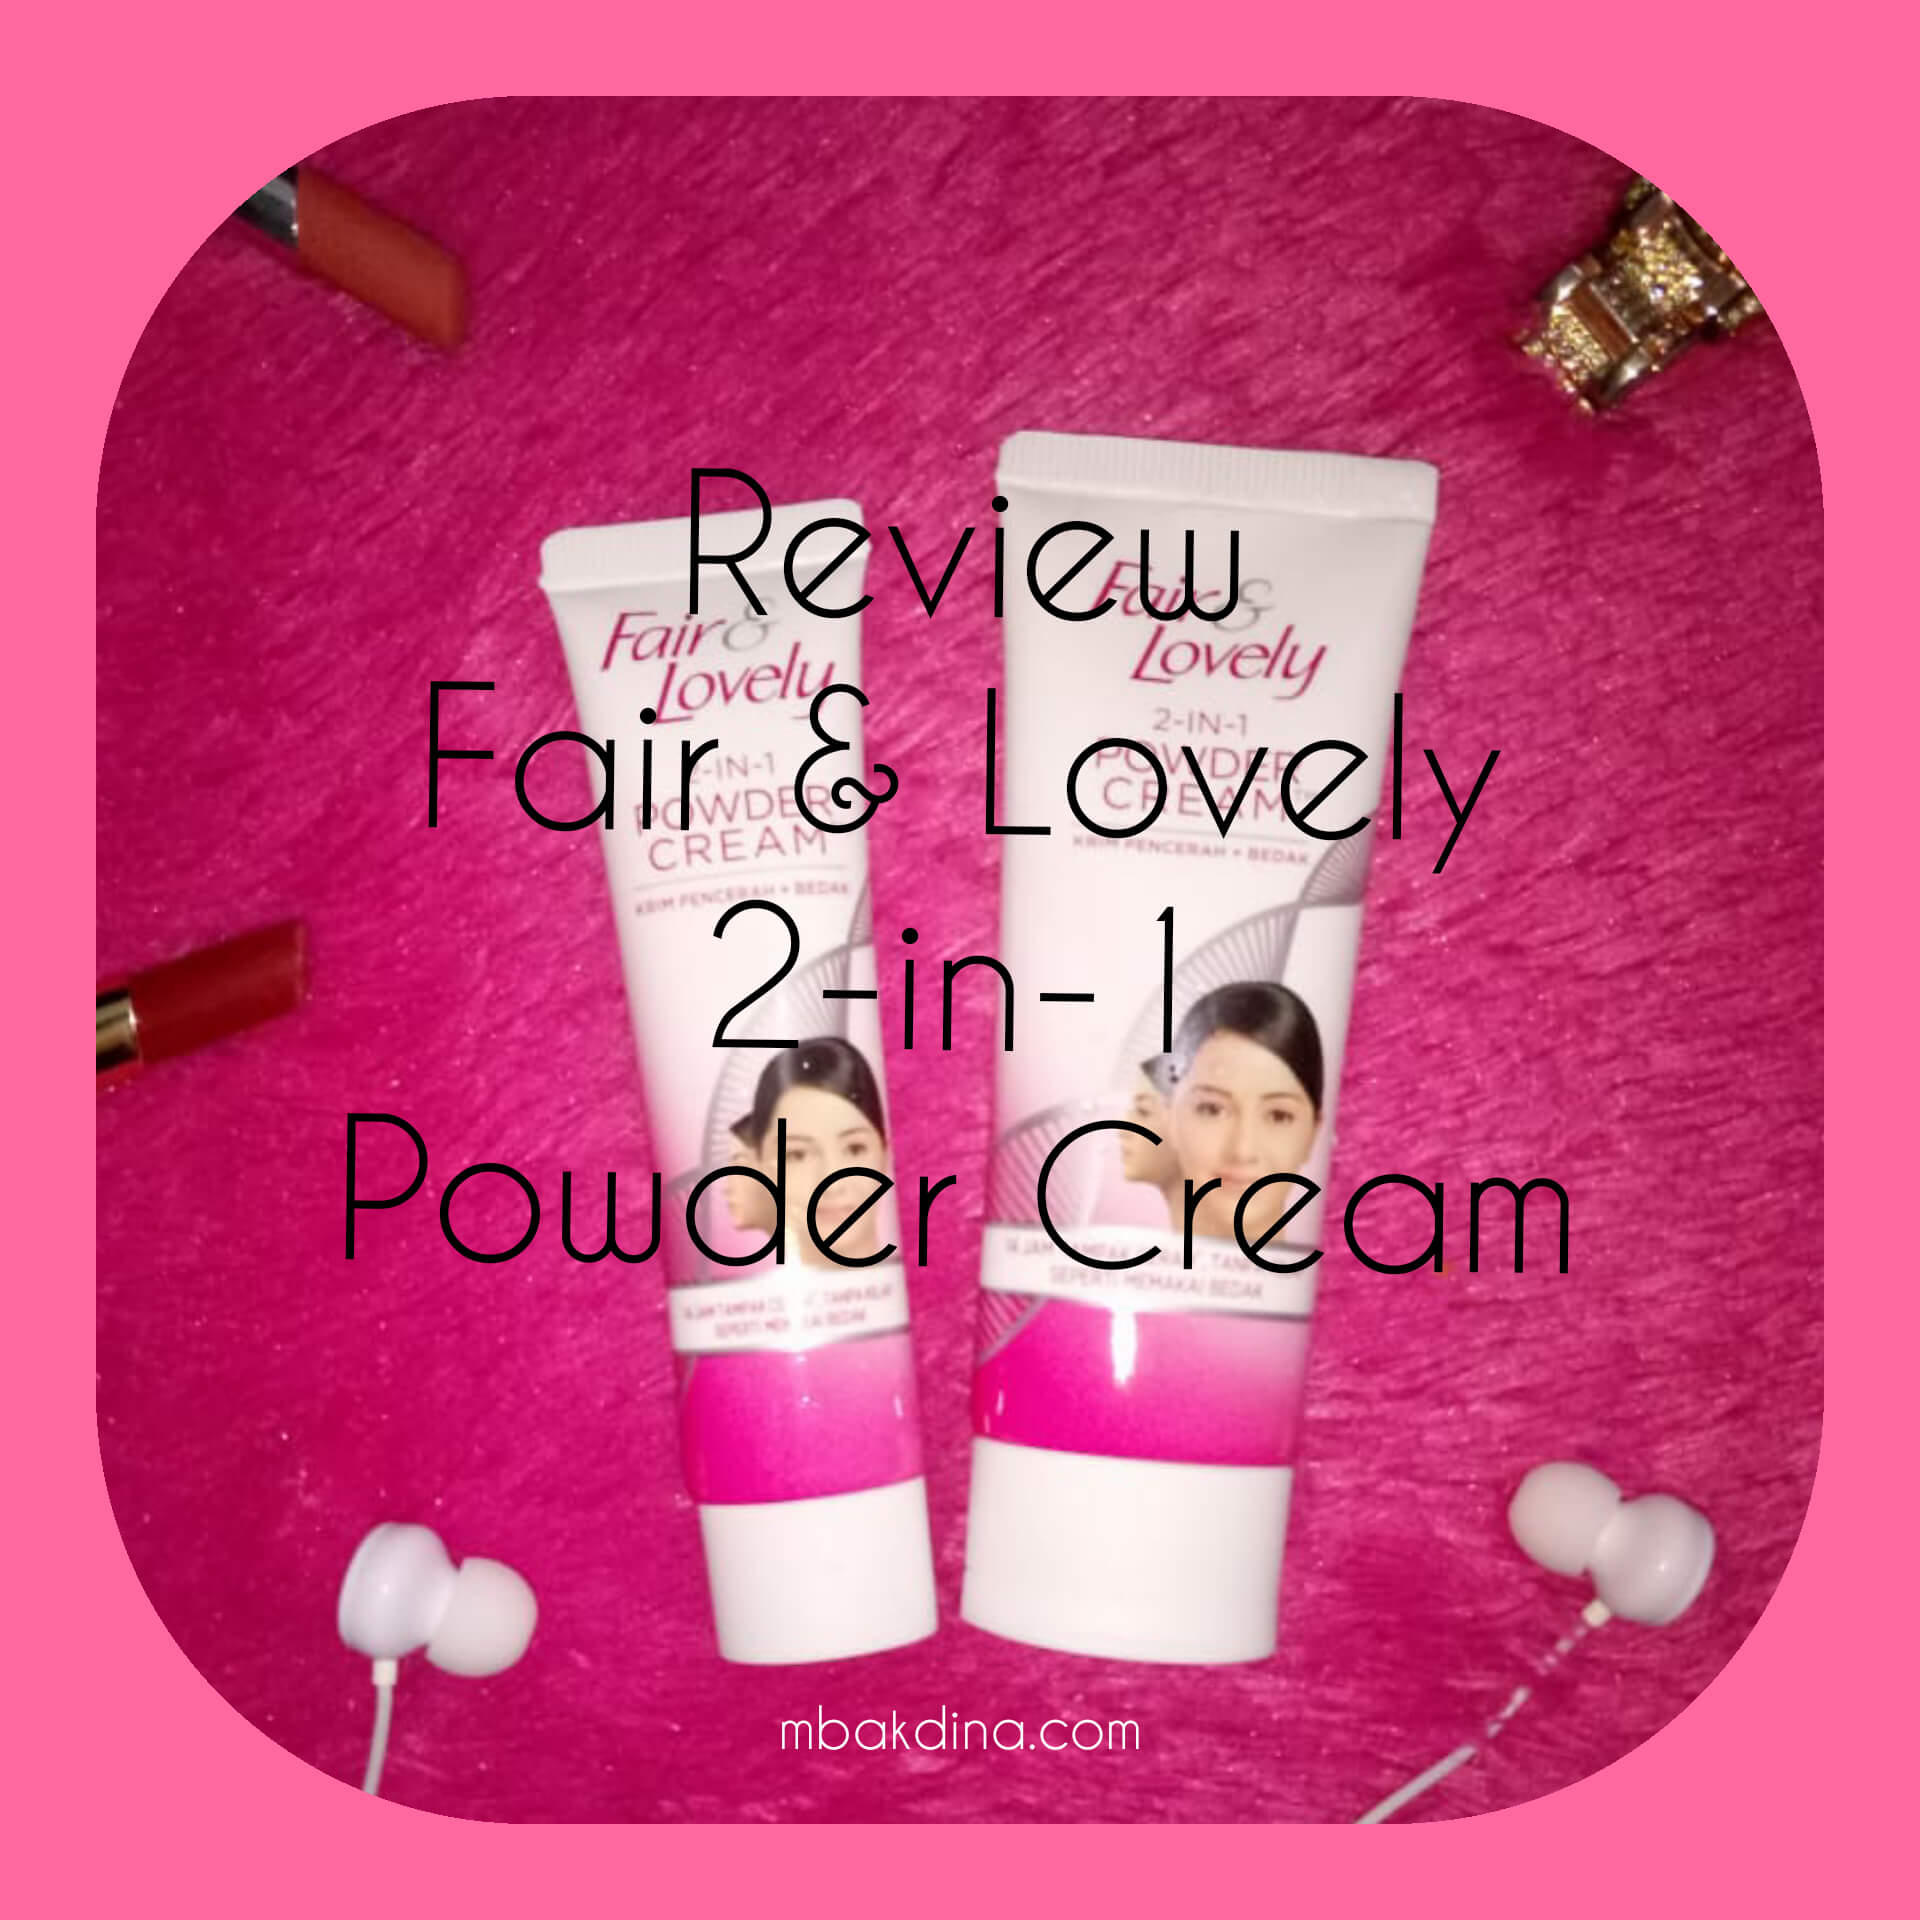 Review Jujur Fair & Lovely 2in1 Powder Cream